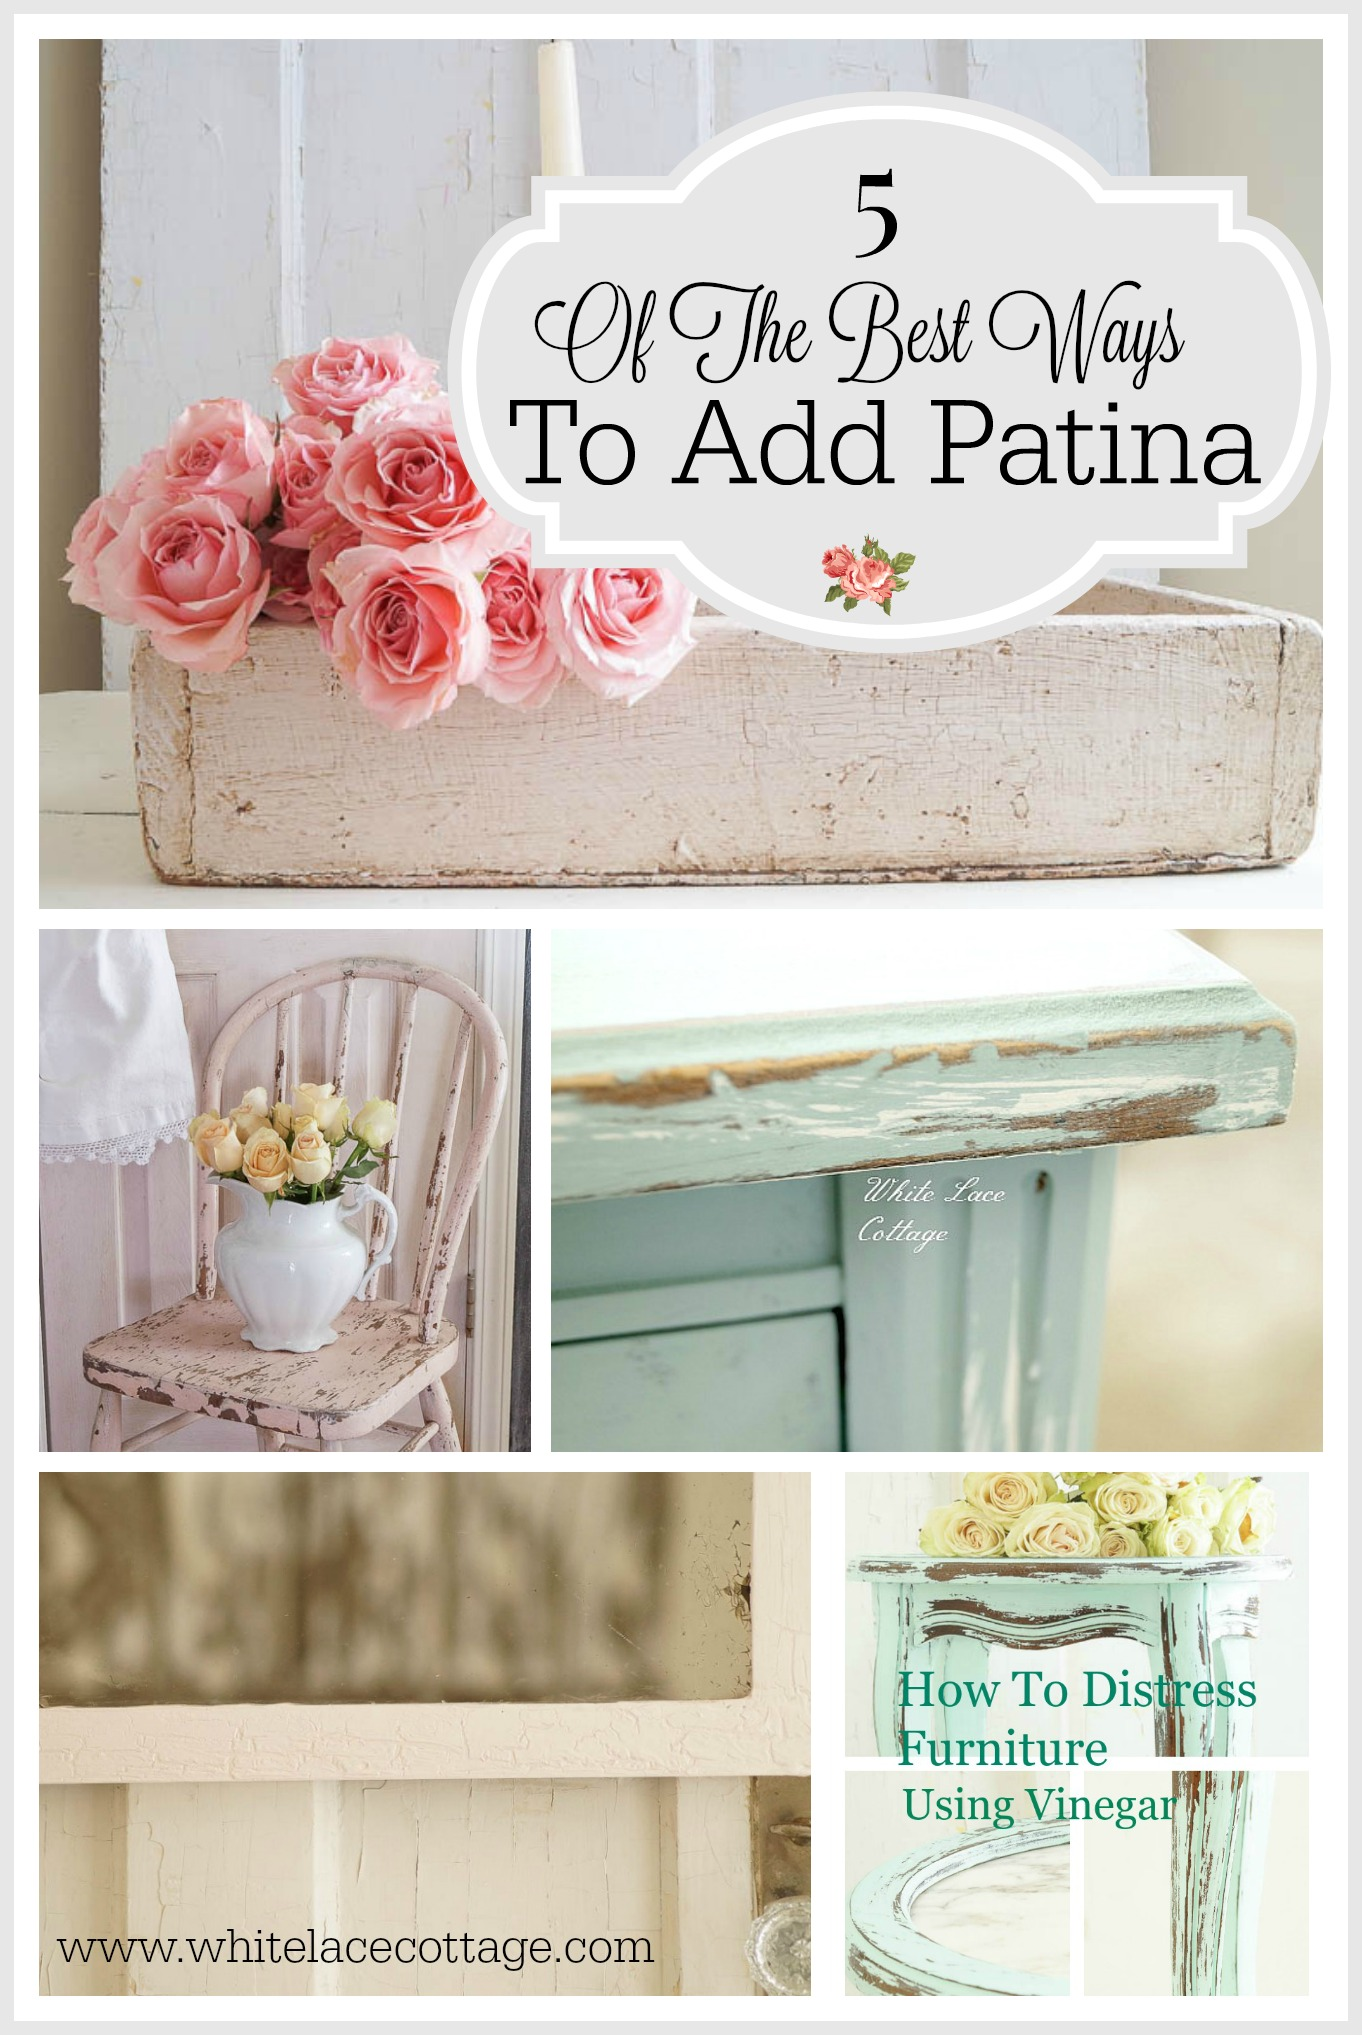 5 of the best ways to add patina